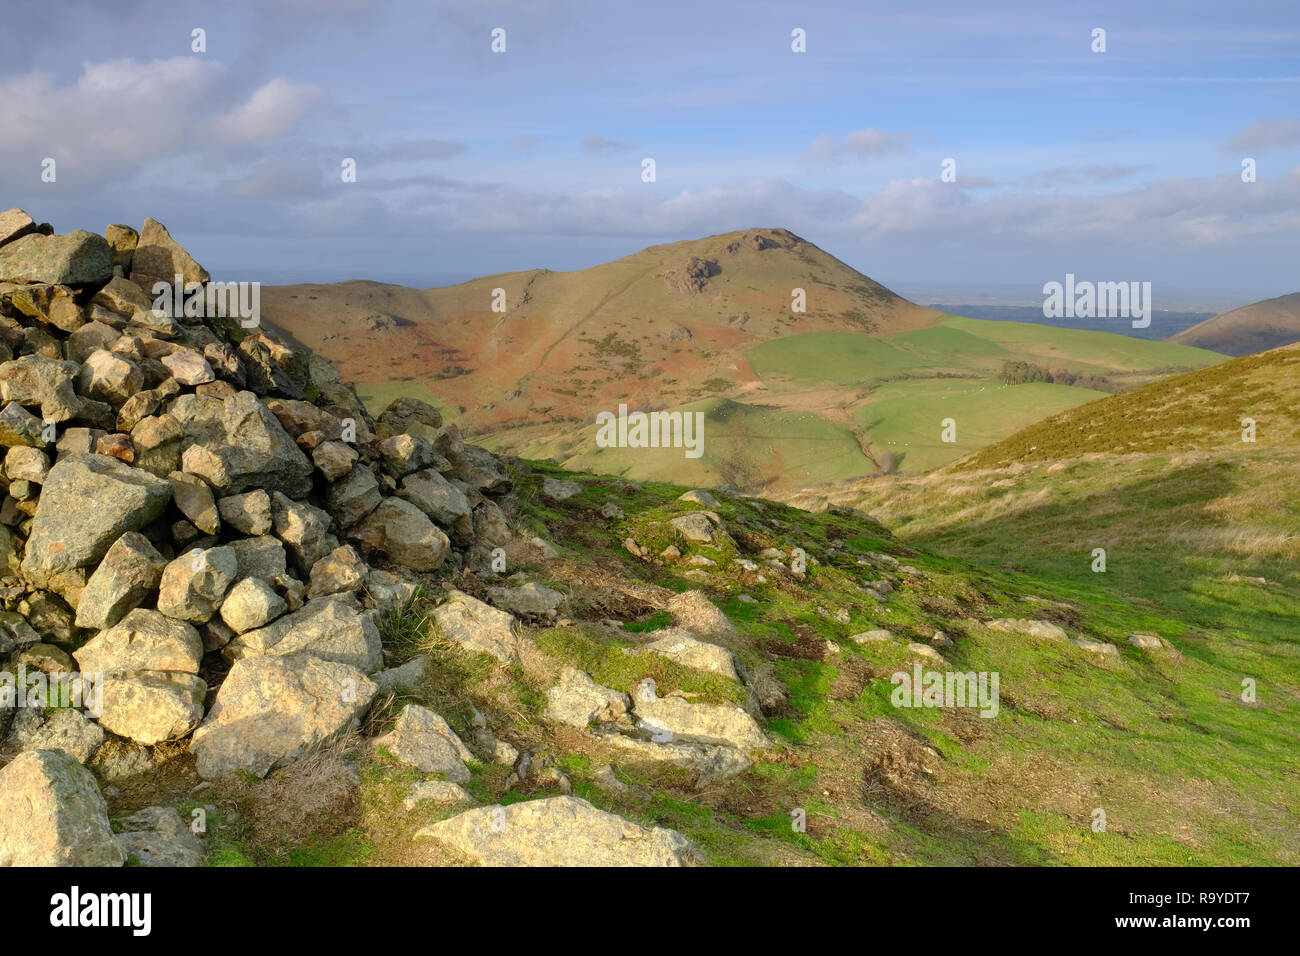 Caer Caradoc hill viewed from Hope Bowdler hill in Shropshire, UK - Stock Image